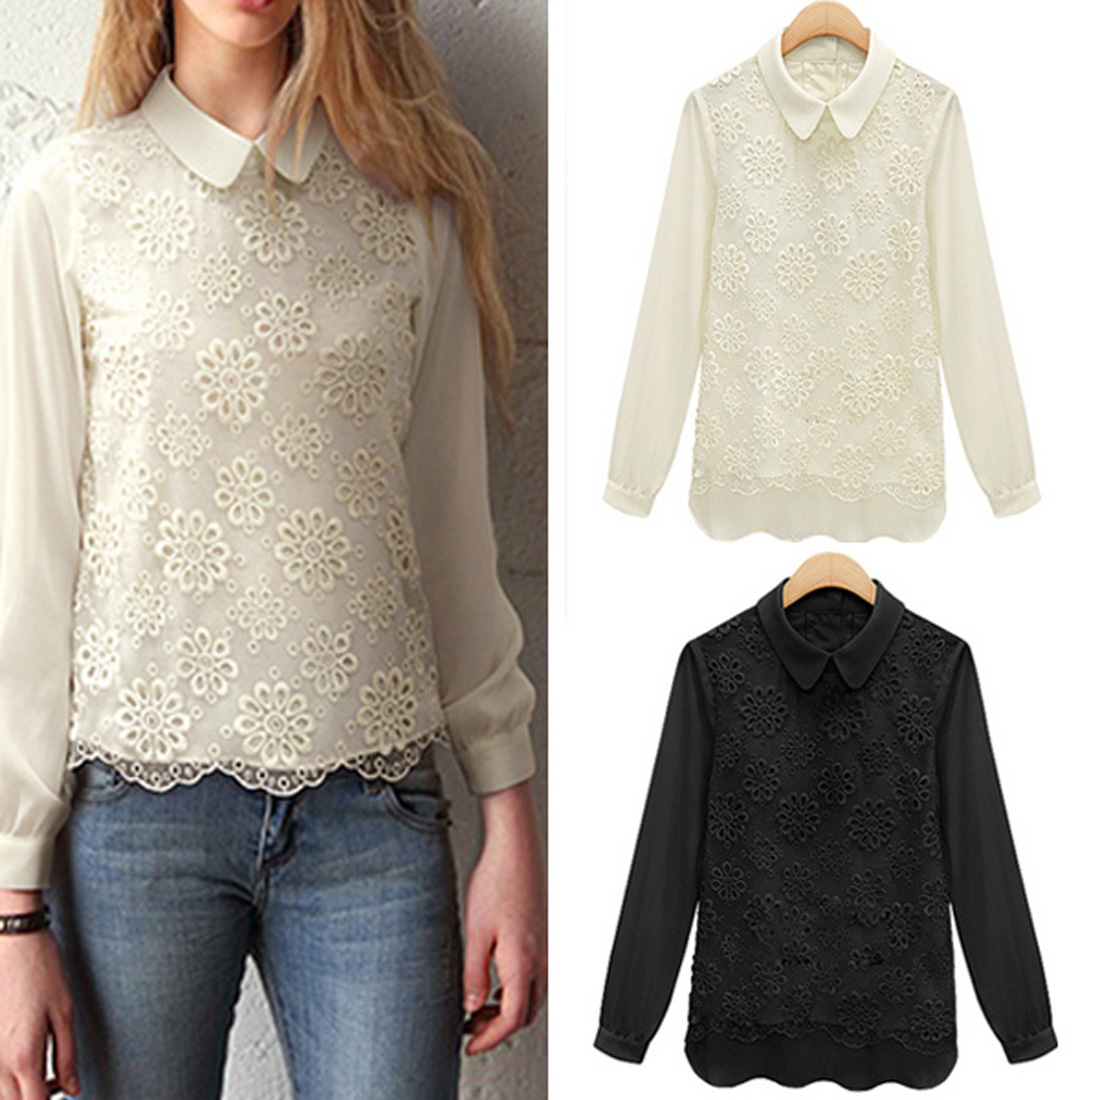 Blouse Lace Collar - Black Dressy Blouses